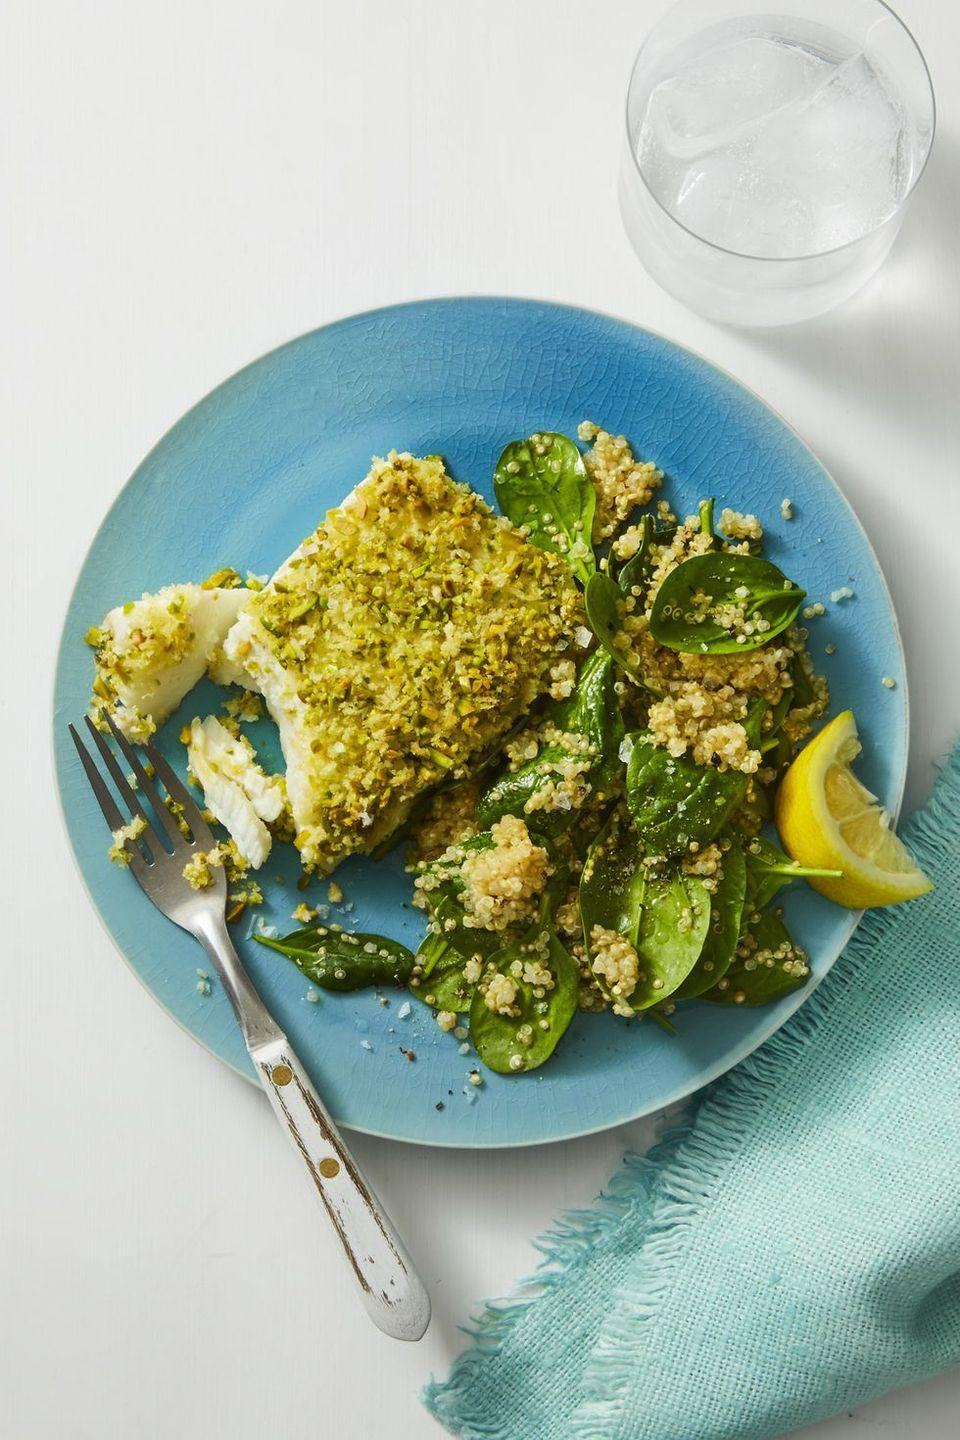 "<p>This light and crunchy white fish dish is a <a href=""https://www.healthline.com/nutrition/11-health-benefits-of-fish#section1"" rel=""nofollow noopener"" target=""_blank"" data-ylk=""slk:great source"" class=""link rapid-noclick-resp"">great source</a> of vitamin D. According to <a href=""https://www.sciencedaily.com/releases/2015/11/151109160556.htm"" rel=""nofollow noopener"" target=""_blank"" data-ylk=""slk:Science Daily"" class=""link rapid-noclick-resp"">Science Daily</a>, deficiencies in vitamin D may be a risk factor for heart attacks, congestive heart failure, peripheral arterial disease (PAD), strokes, and other conditions associated with cardiovascular disease, like high blood pressure and diabetes.</p><p><em><strong><a href=""https://www.womansday.com/food-recipes/food-drinks/a19758207/pistachio-crusted-fish-recipe/"" rel=""nofollow noopener"" target=""_blank"" data-ylk=""slk:Get the Pistachio-Crusted Fish recipe"" class=""link rapid-noclick-resp"">Get the Pistachio-Crusted Fish recipe</a>. </strong></em></p>"